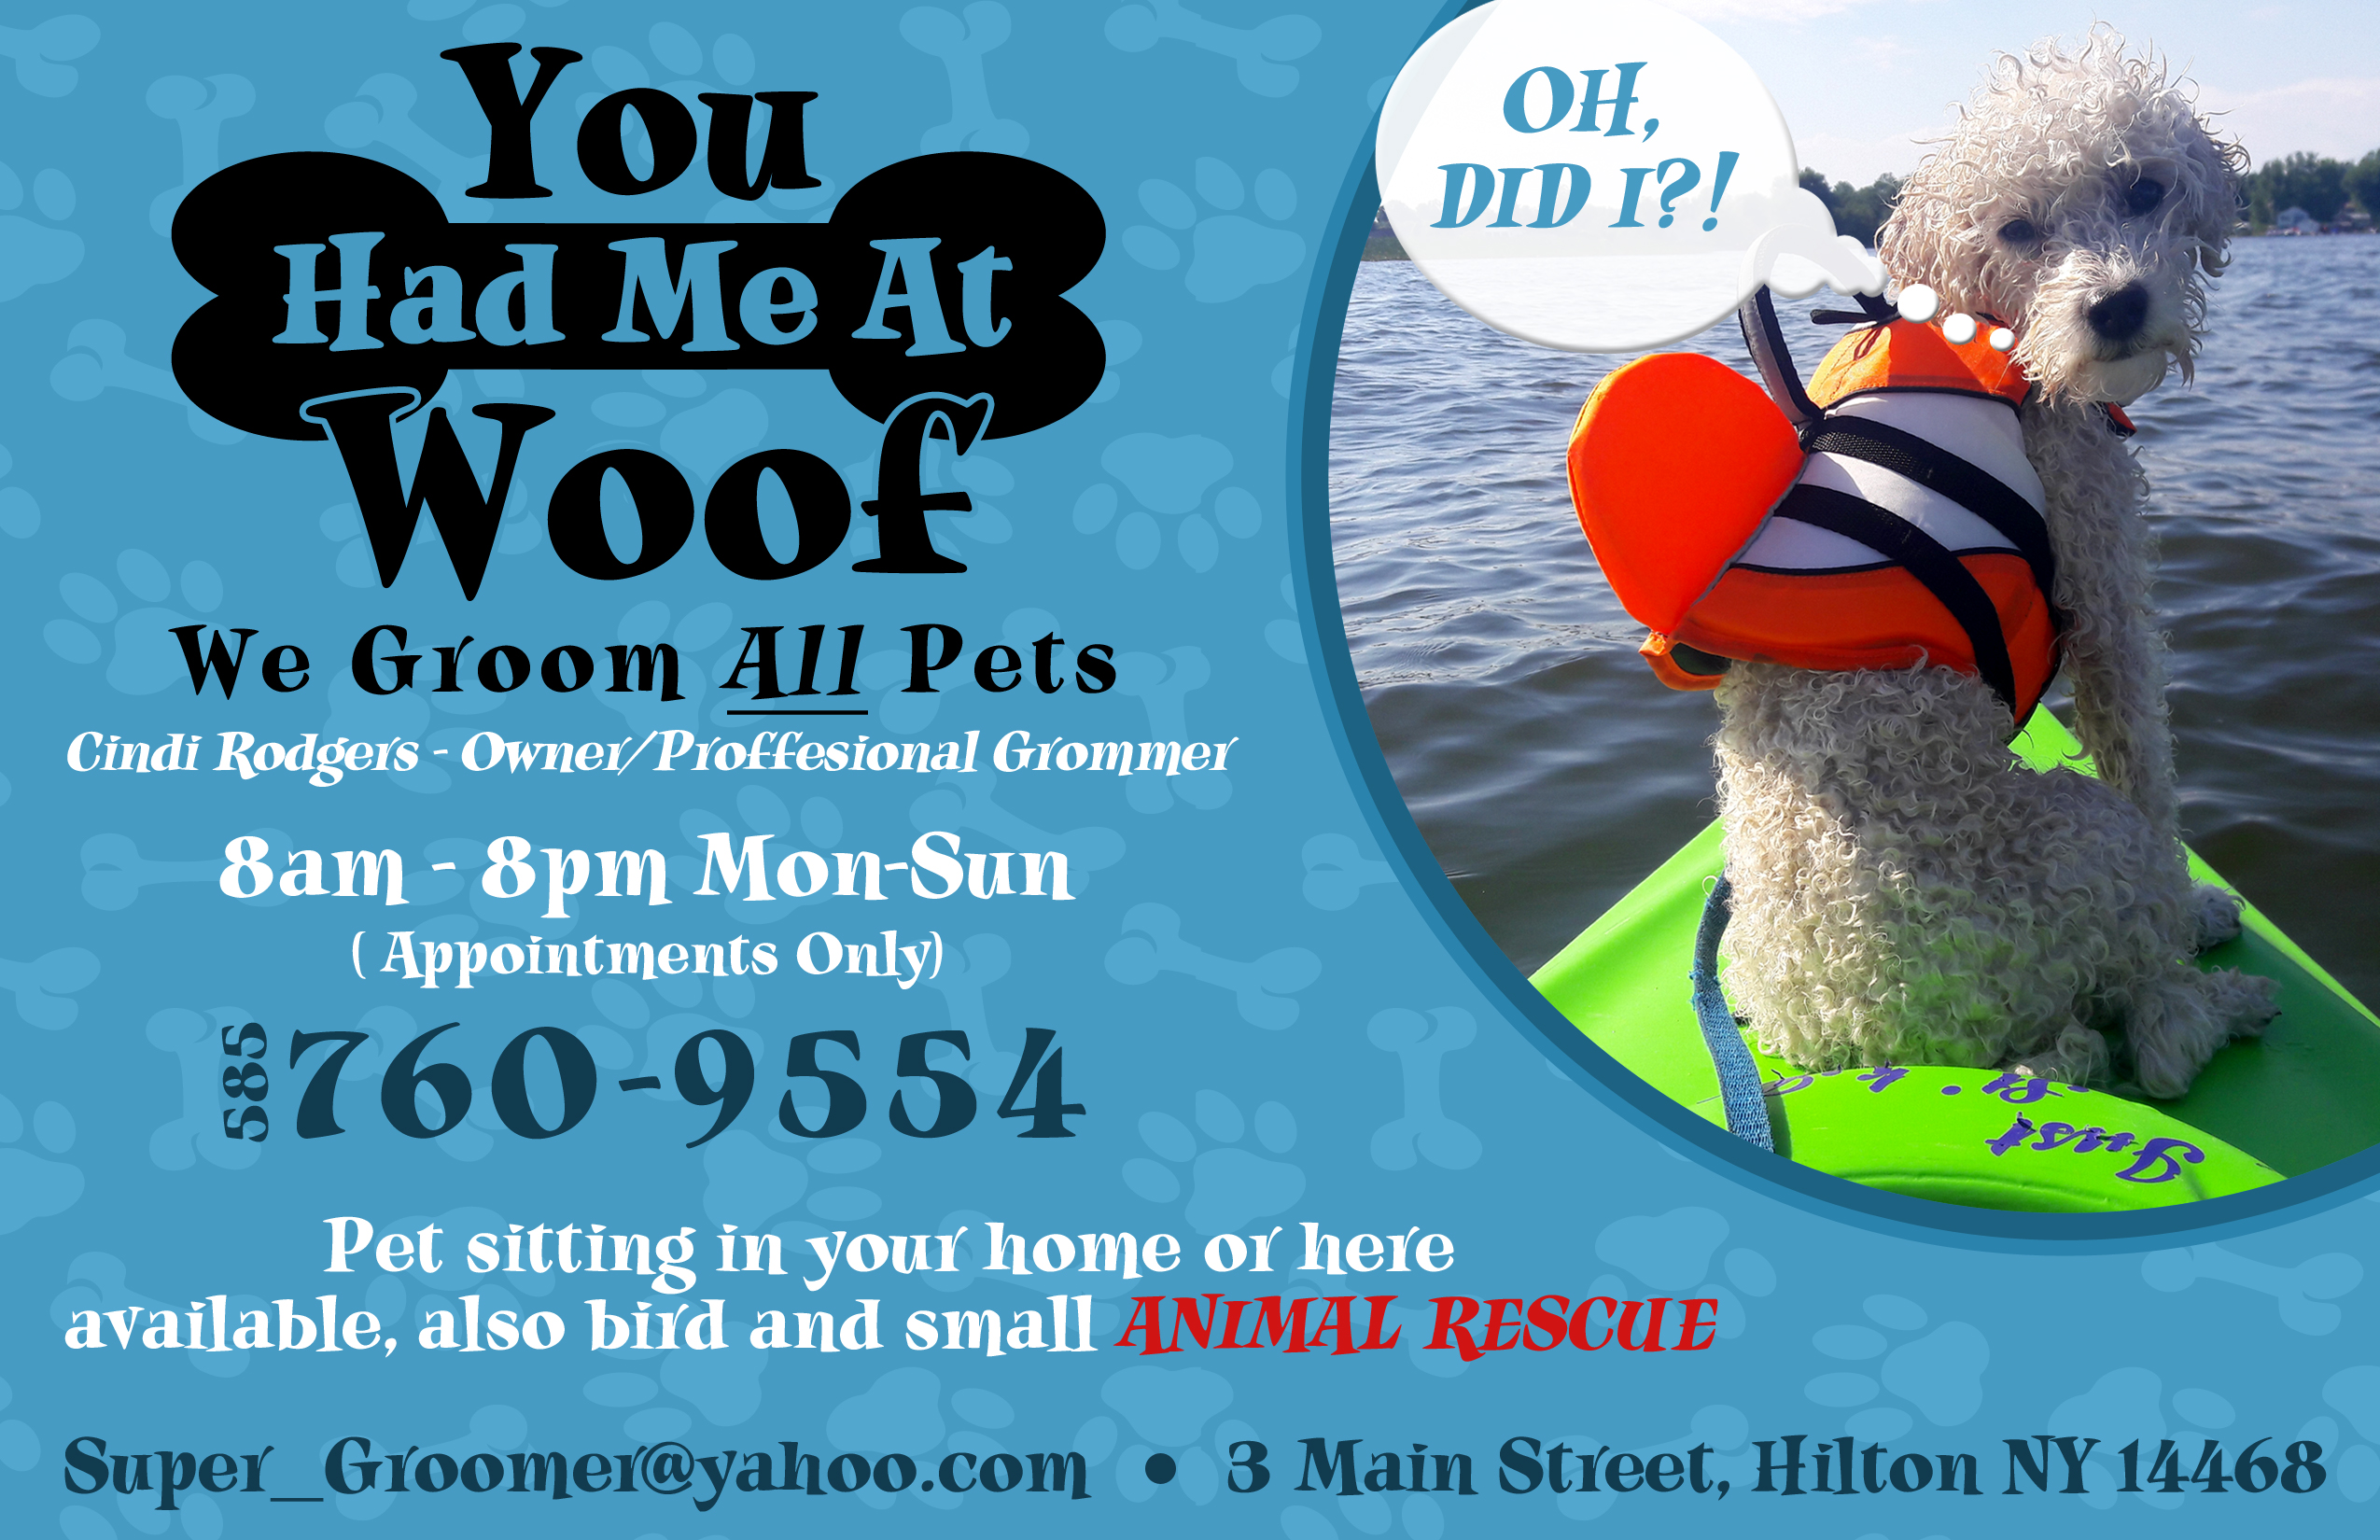 (You Had Me At Woof)  Groomer /Animal Rescue